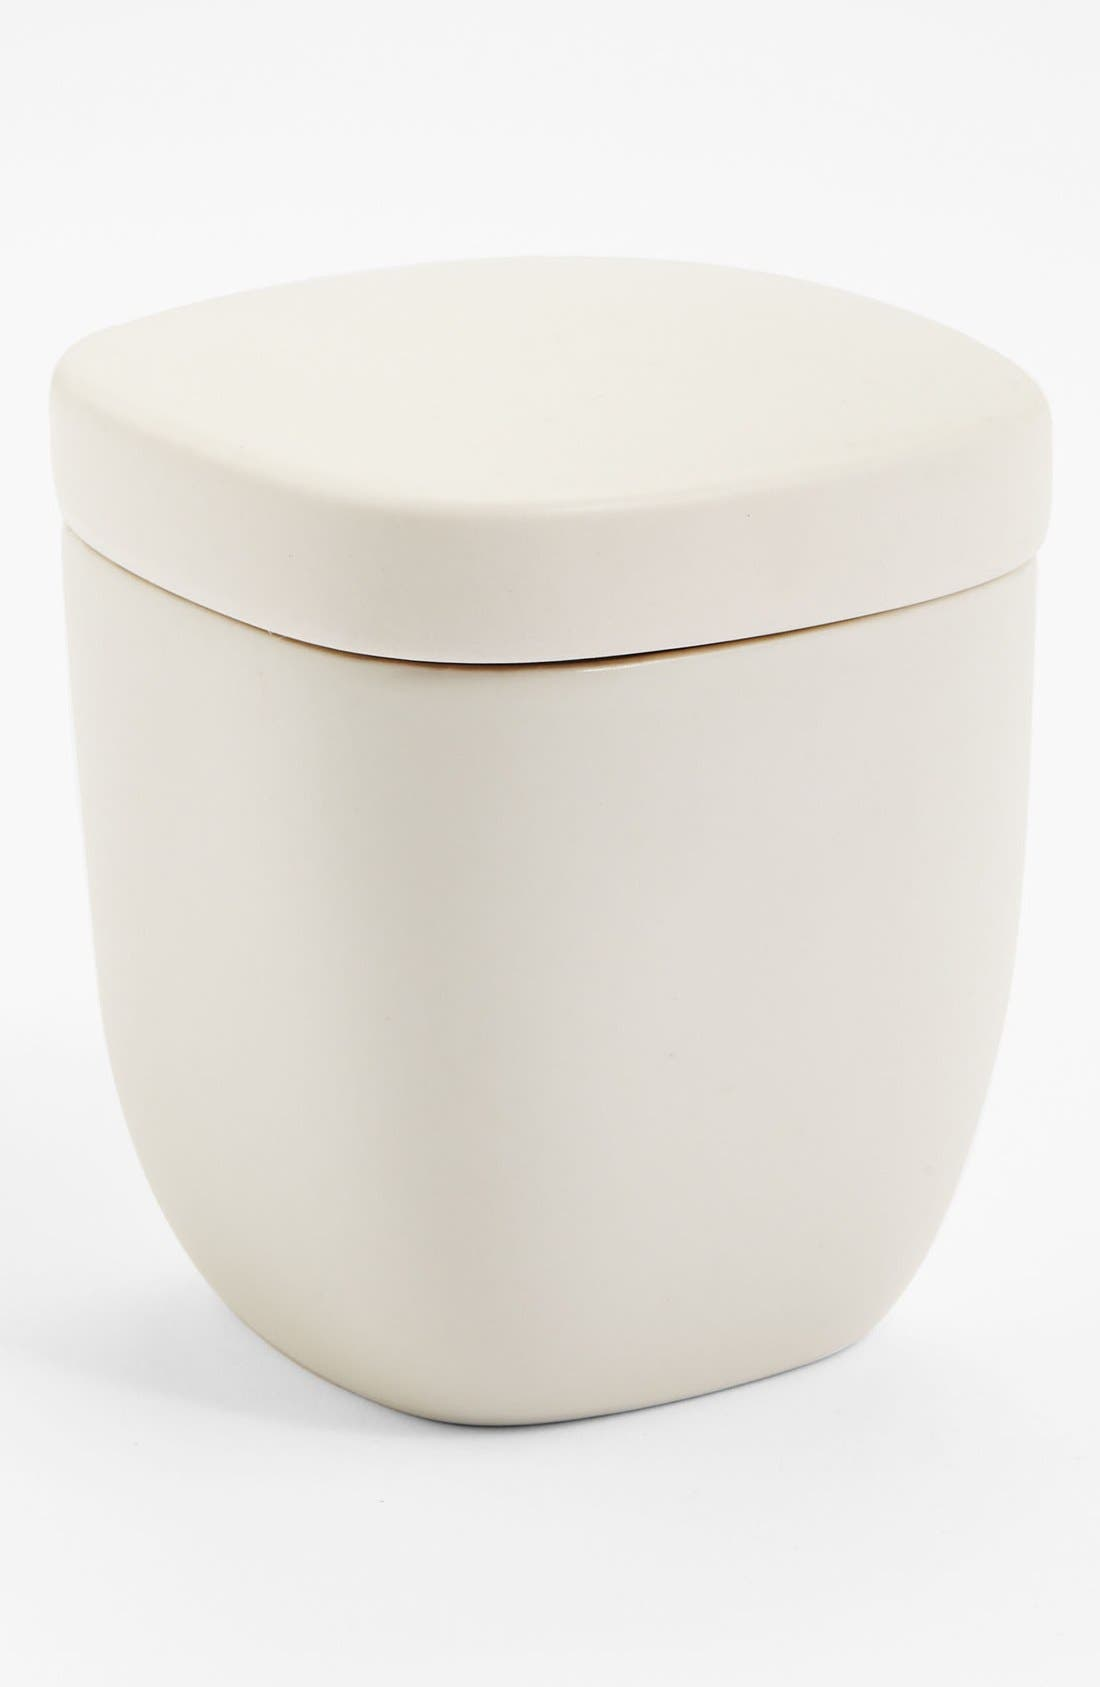 Alternate Image 1 Selected - Waterworks Studio 'Modern' Ceramic Covered Jar (Online Only)